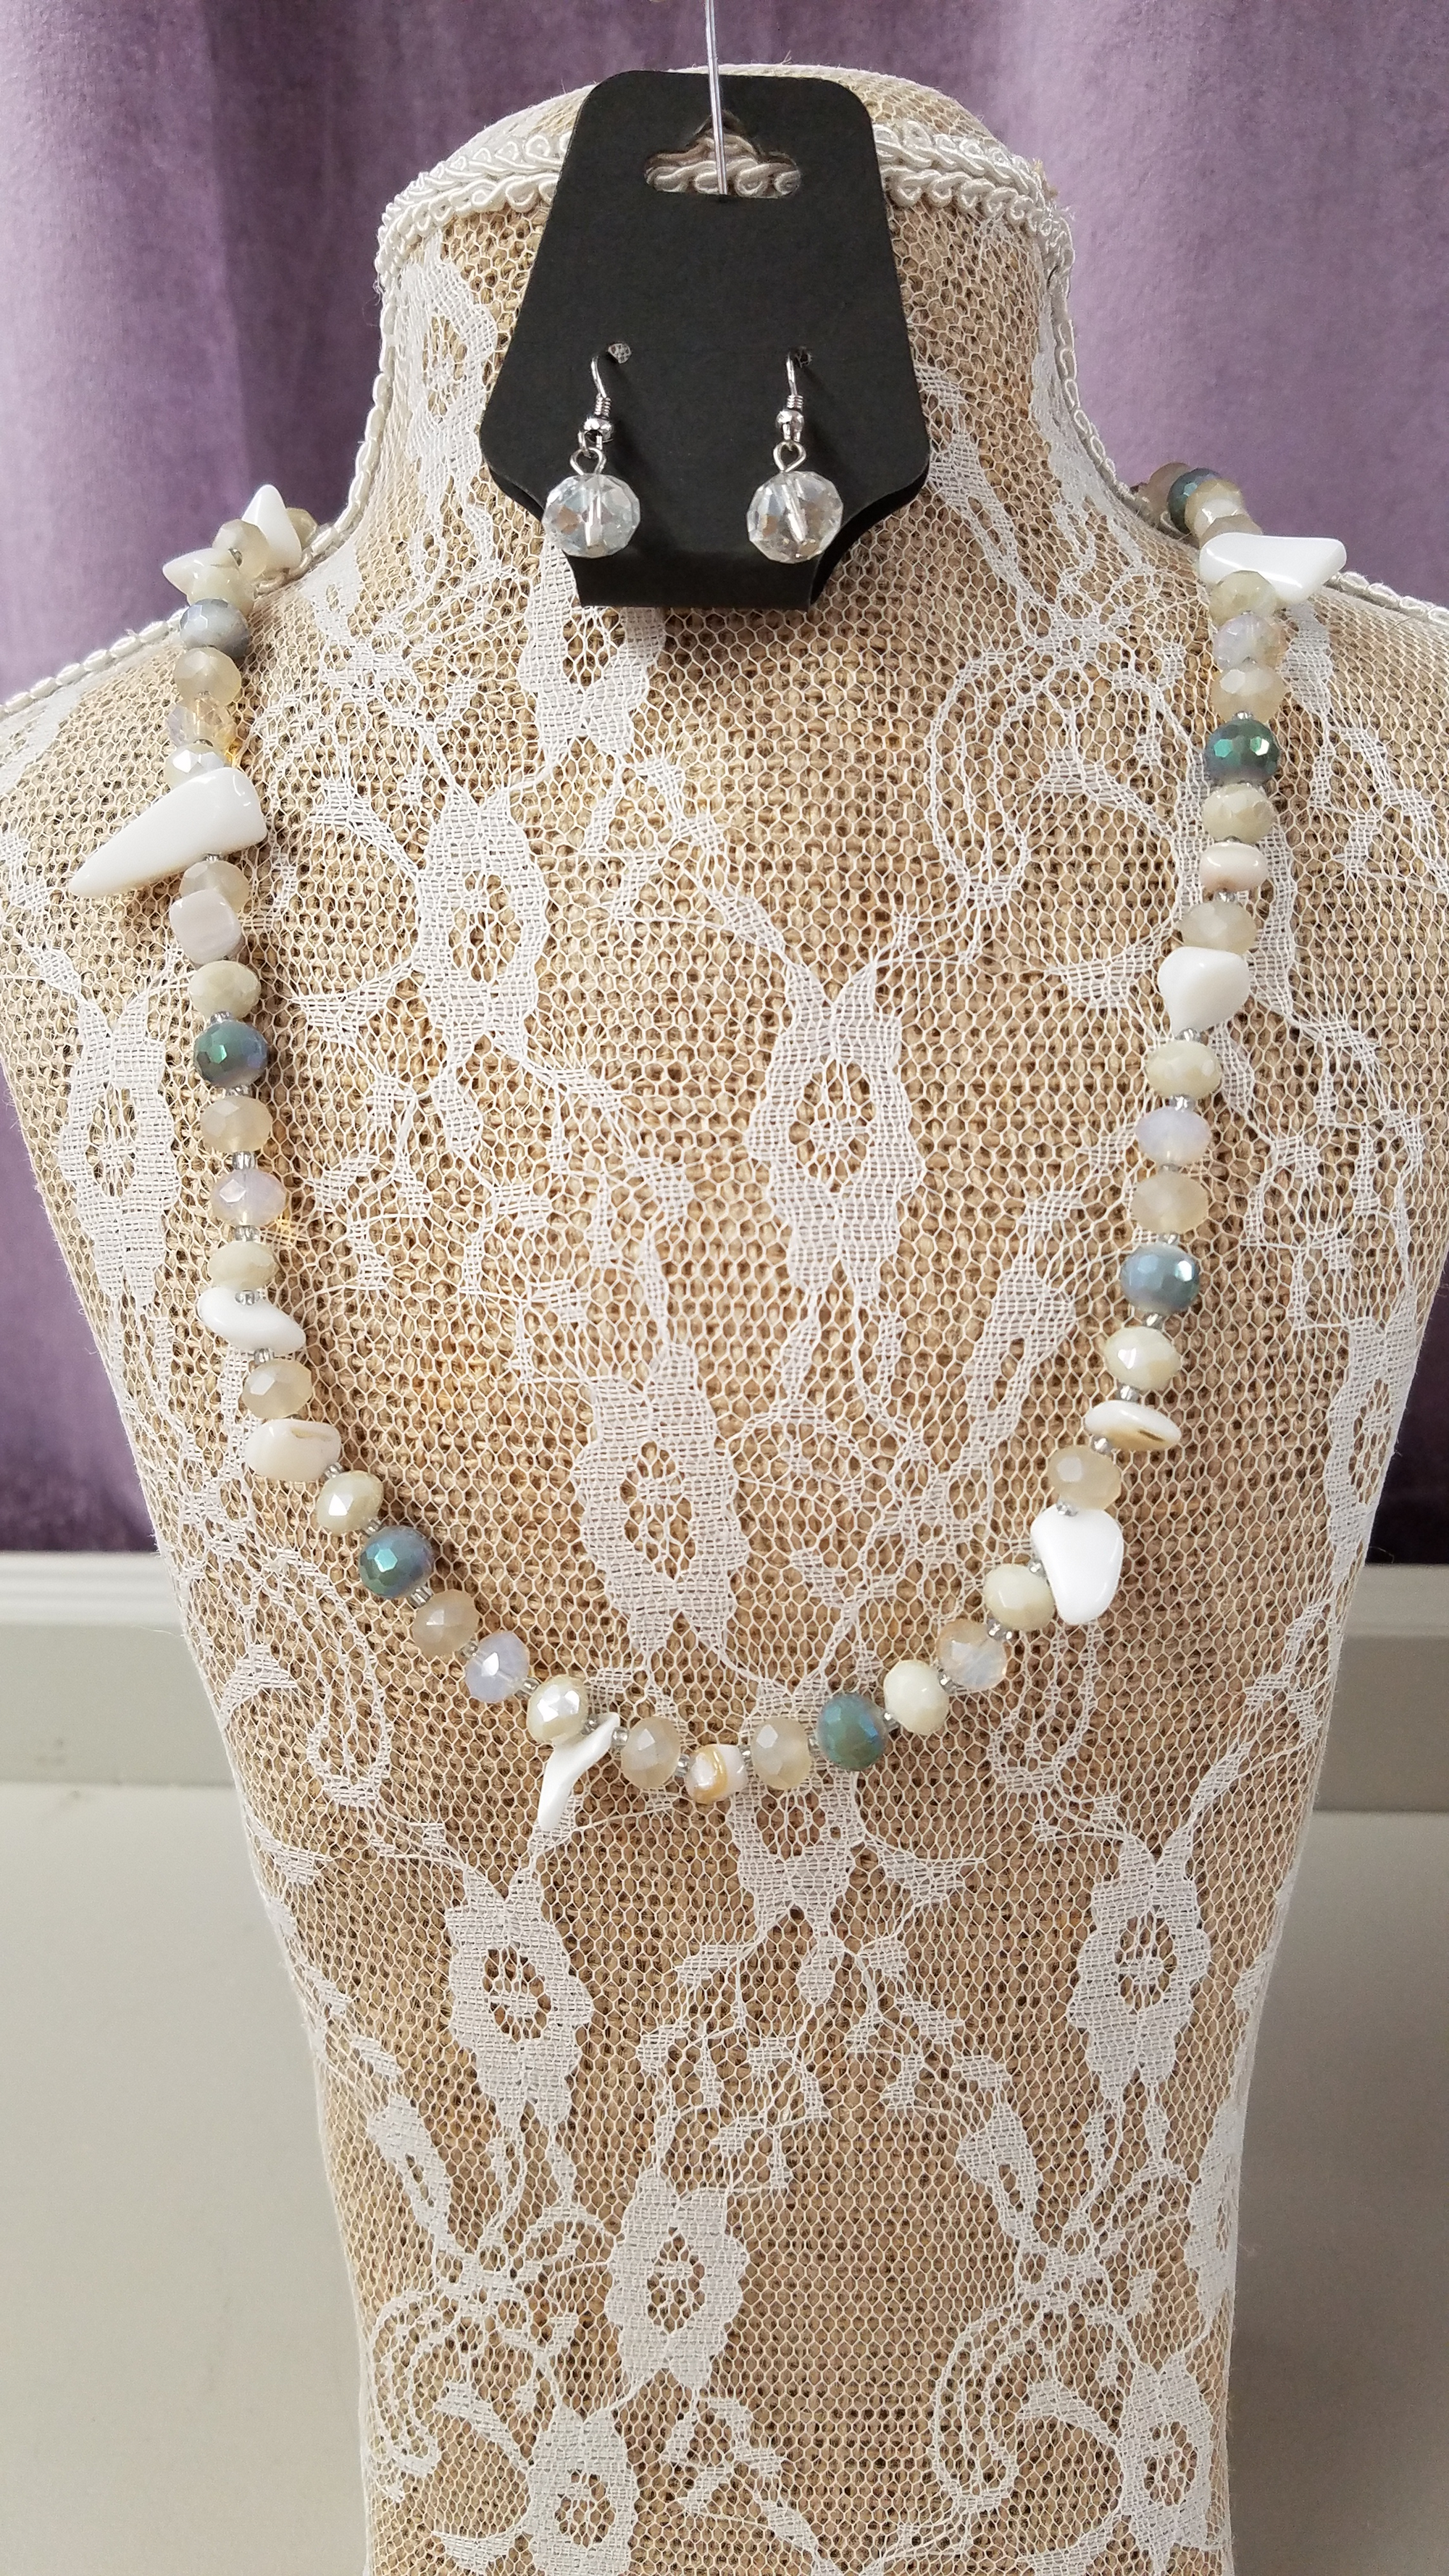 Beautiful Necklace Set with Grey's, Beige & Ivory Beads - You-nique Bou-tique